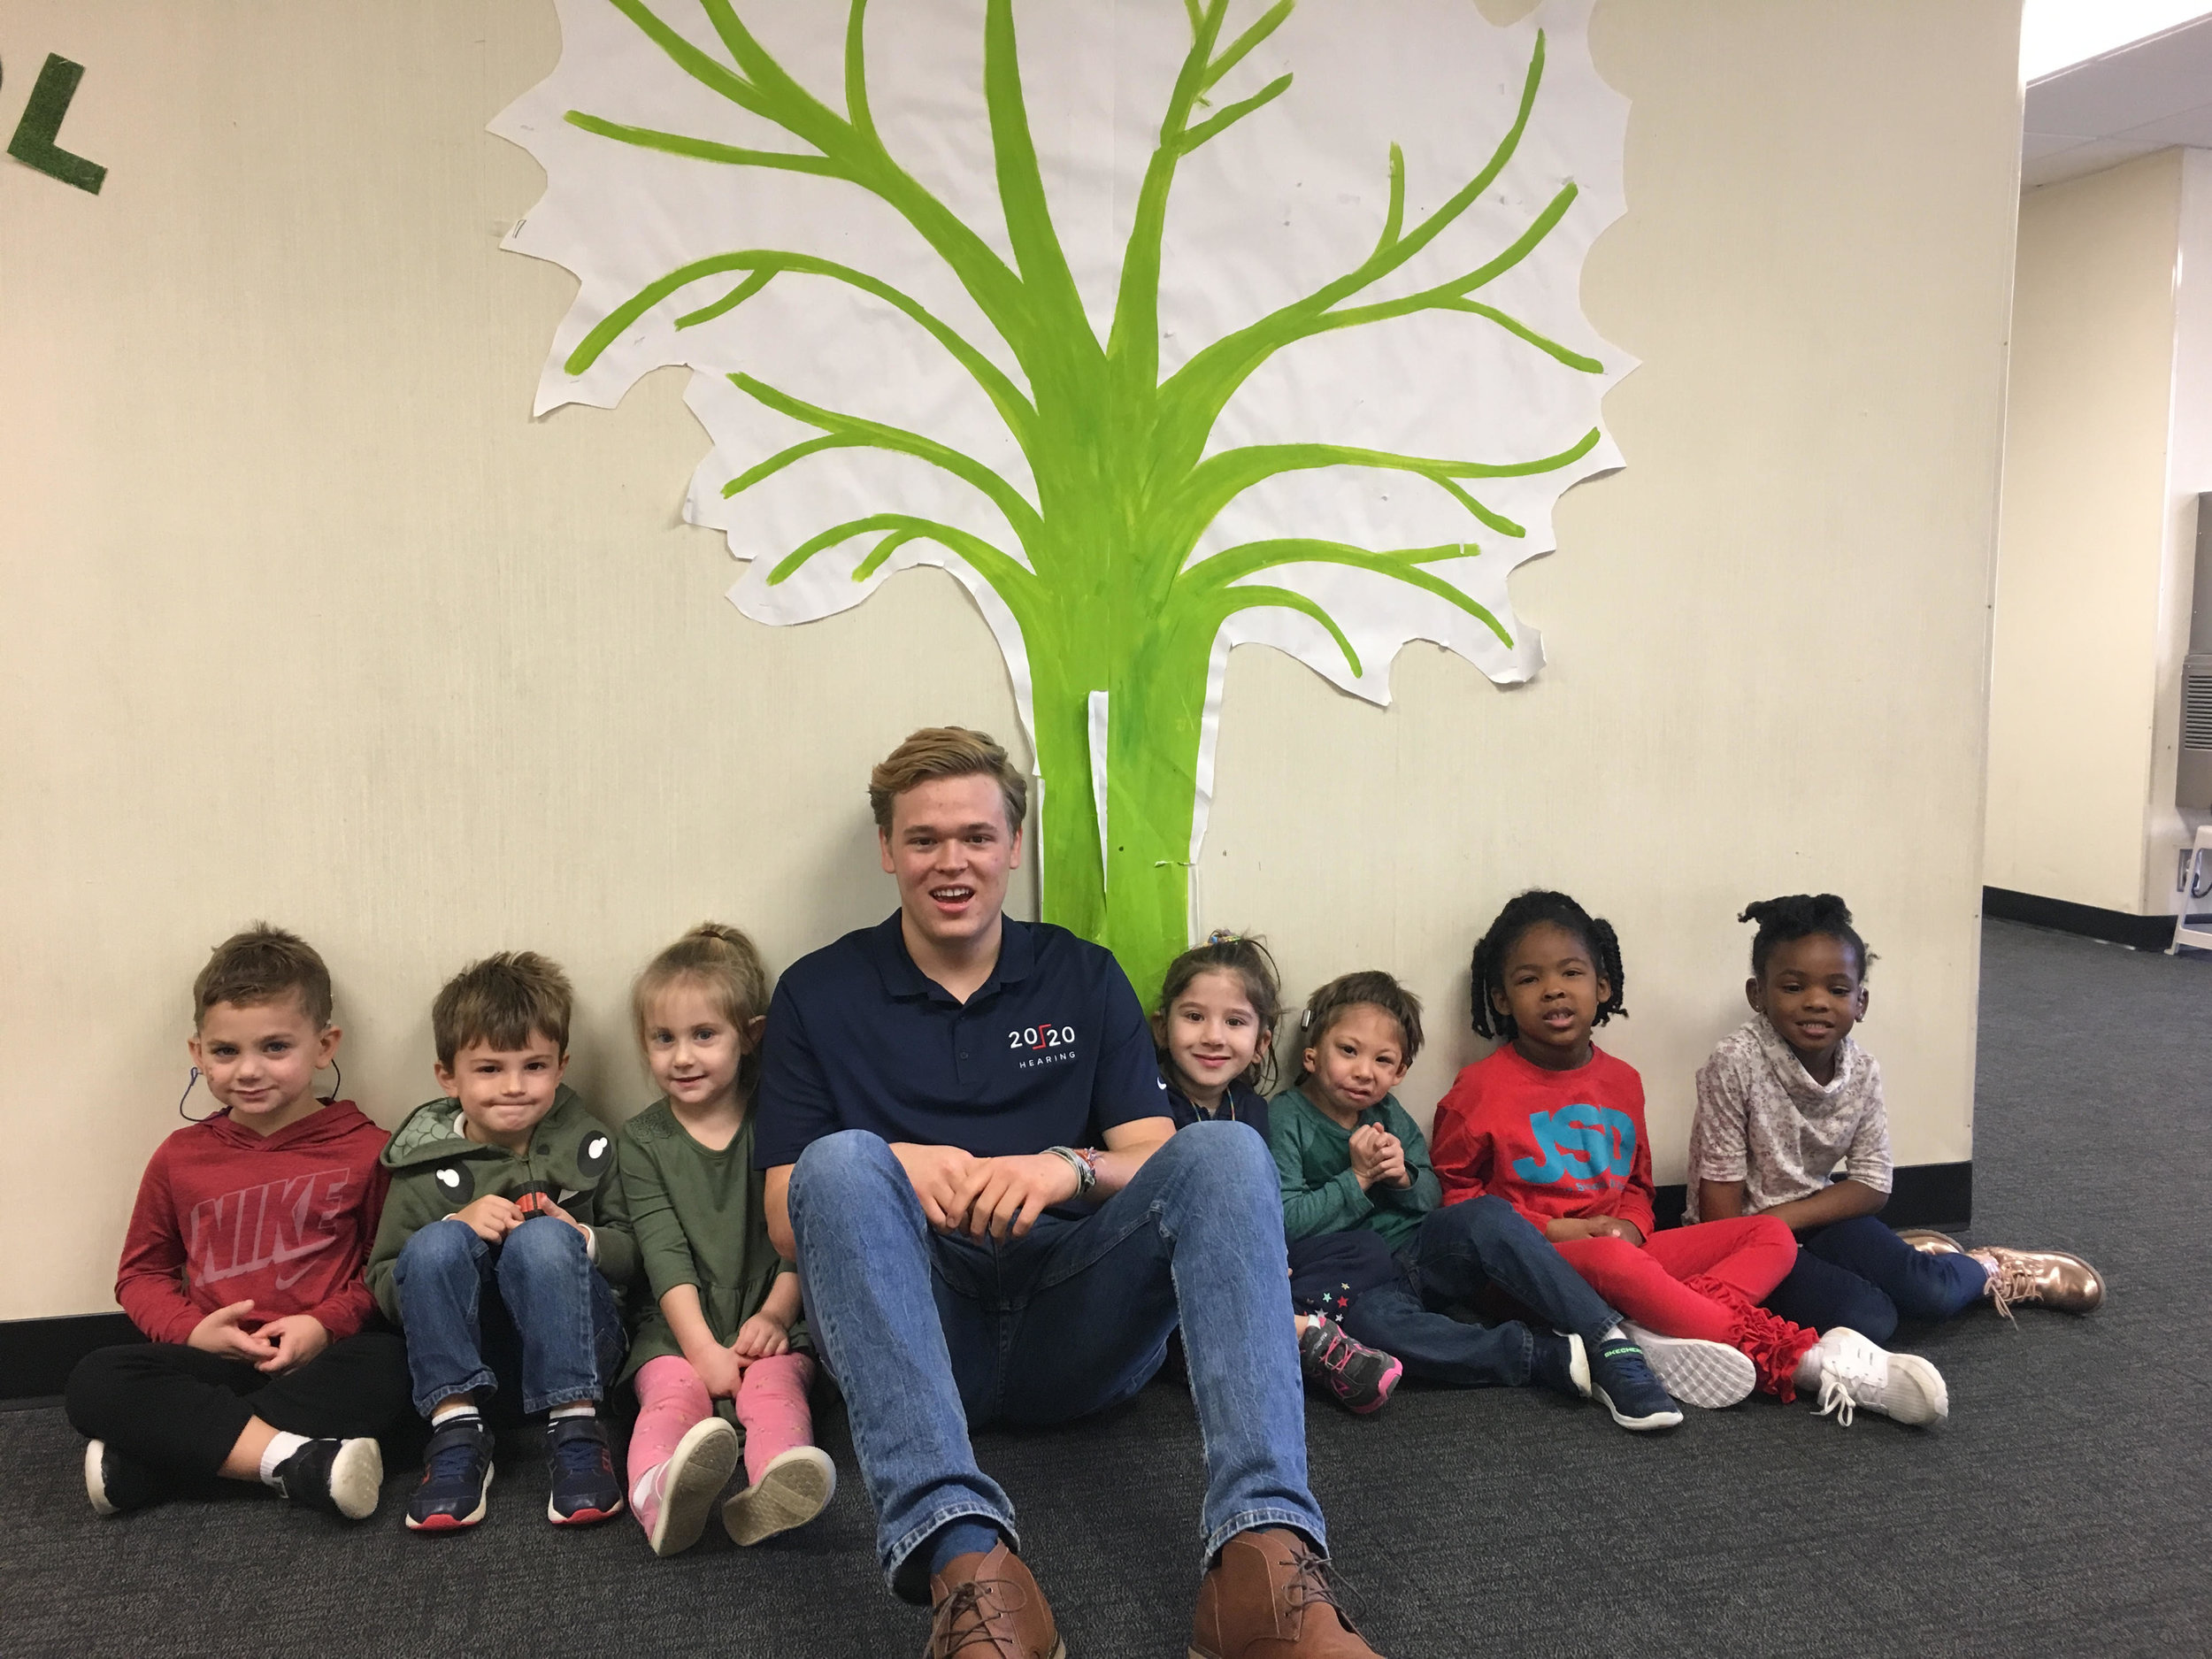 Jack with students under the Giving Tree at the Atlanta Speech School; where students write down what they have done to earn money to serve other kids in need. Such a beautiful picture of selflessness and generosity!